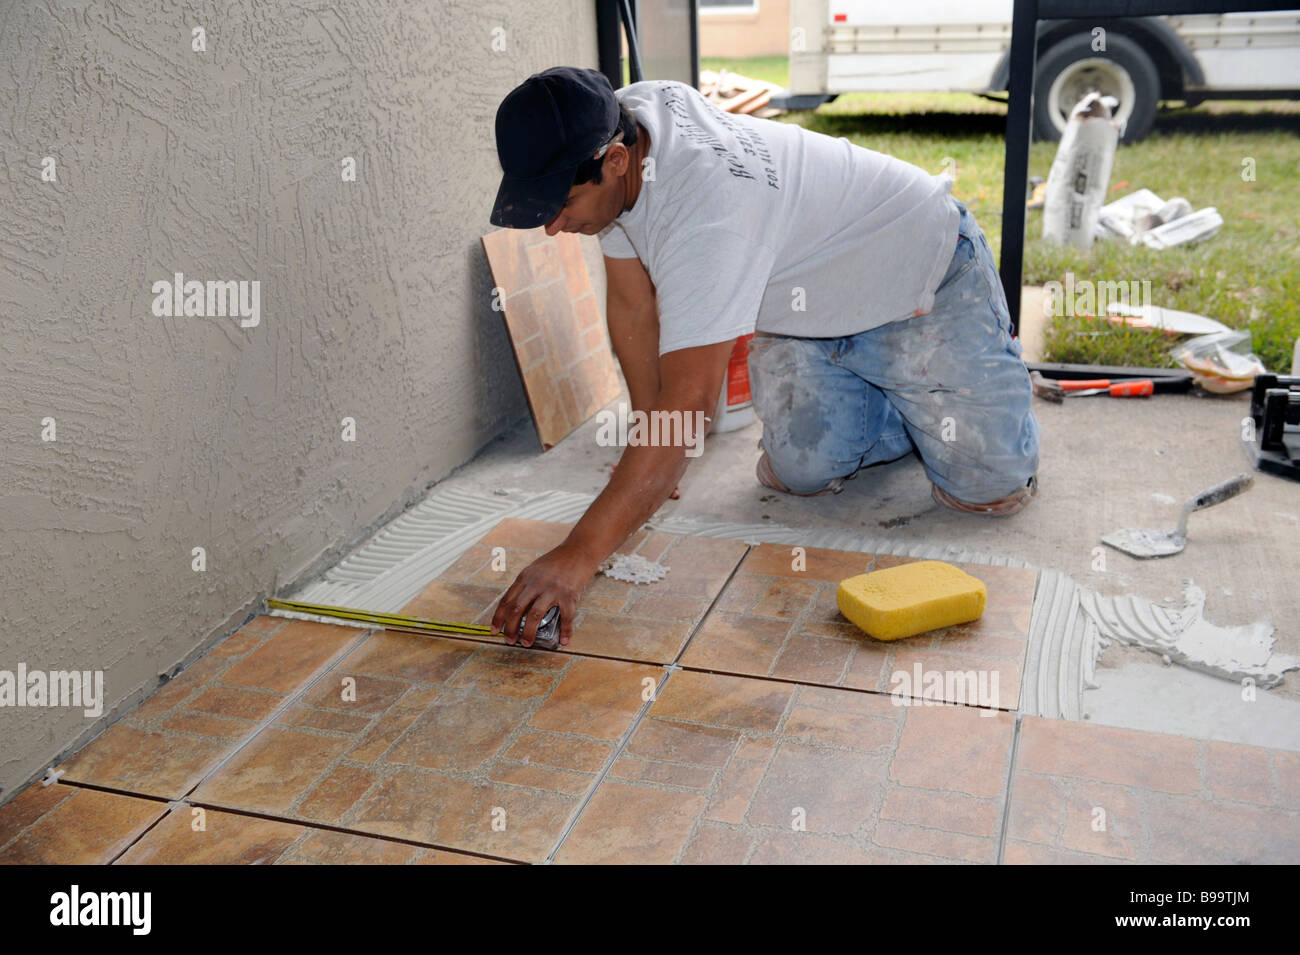 Installing tile on cement floor